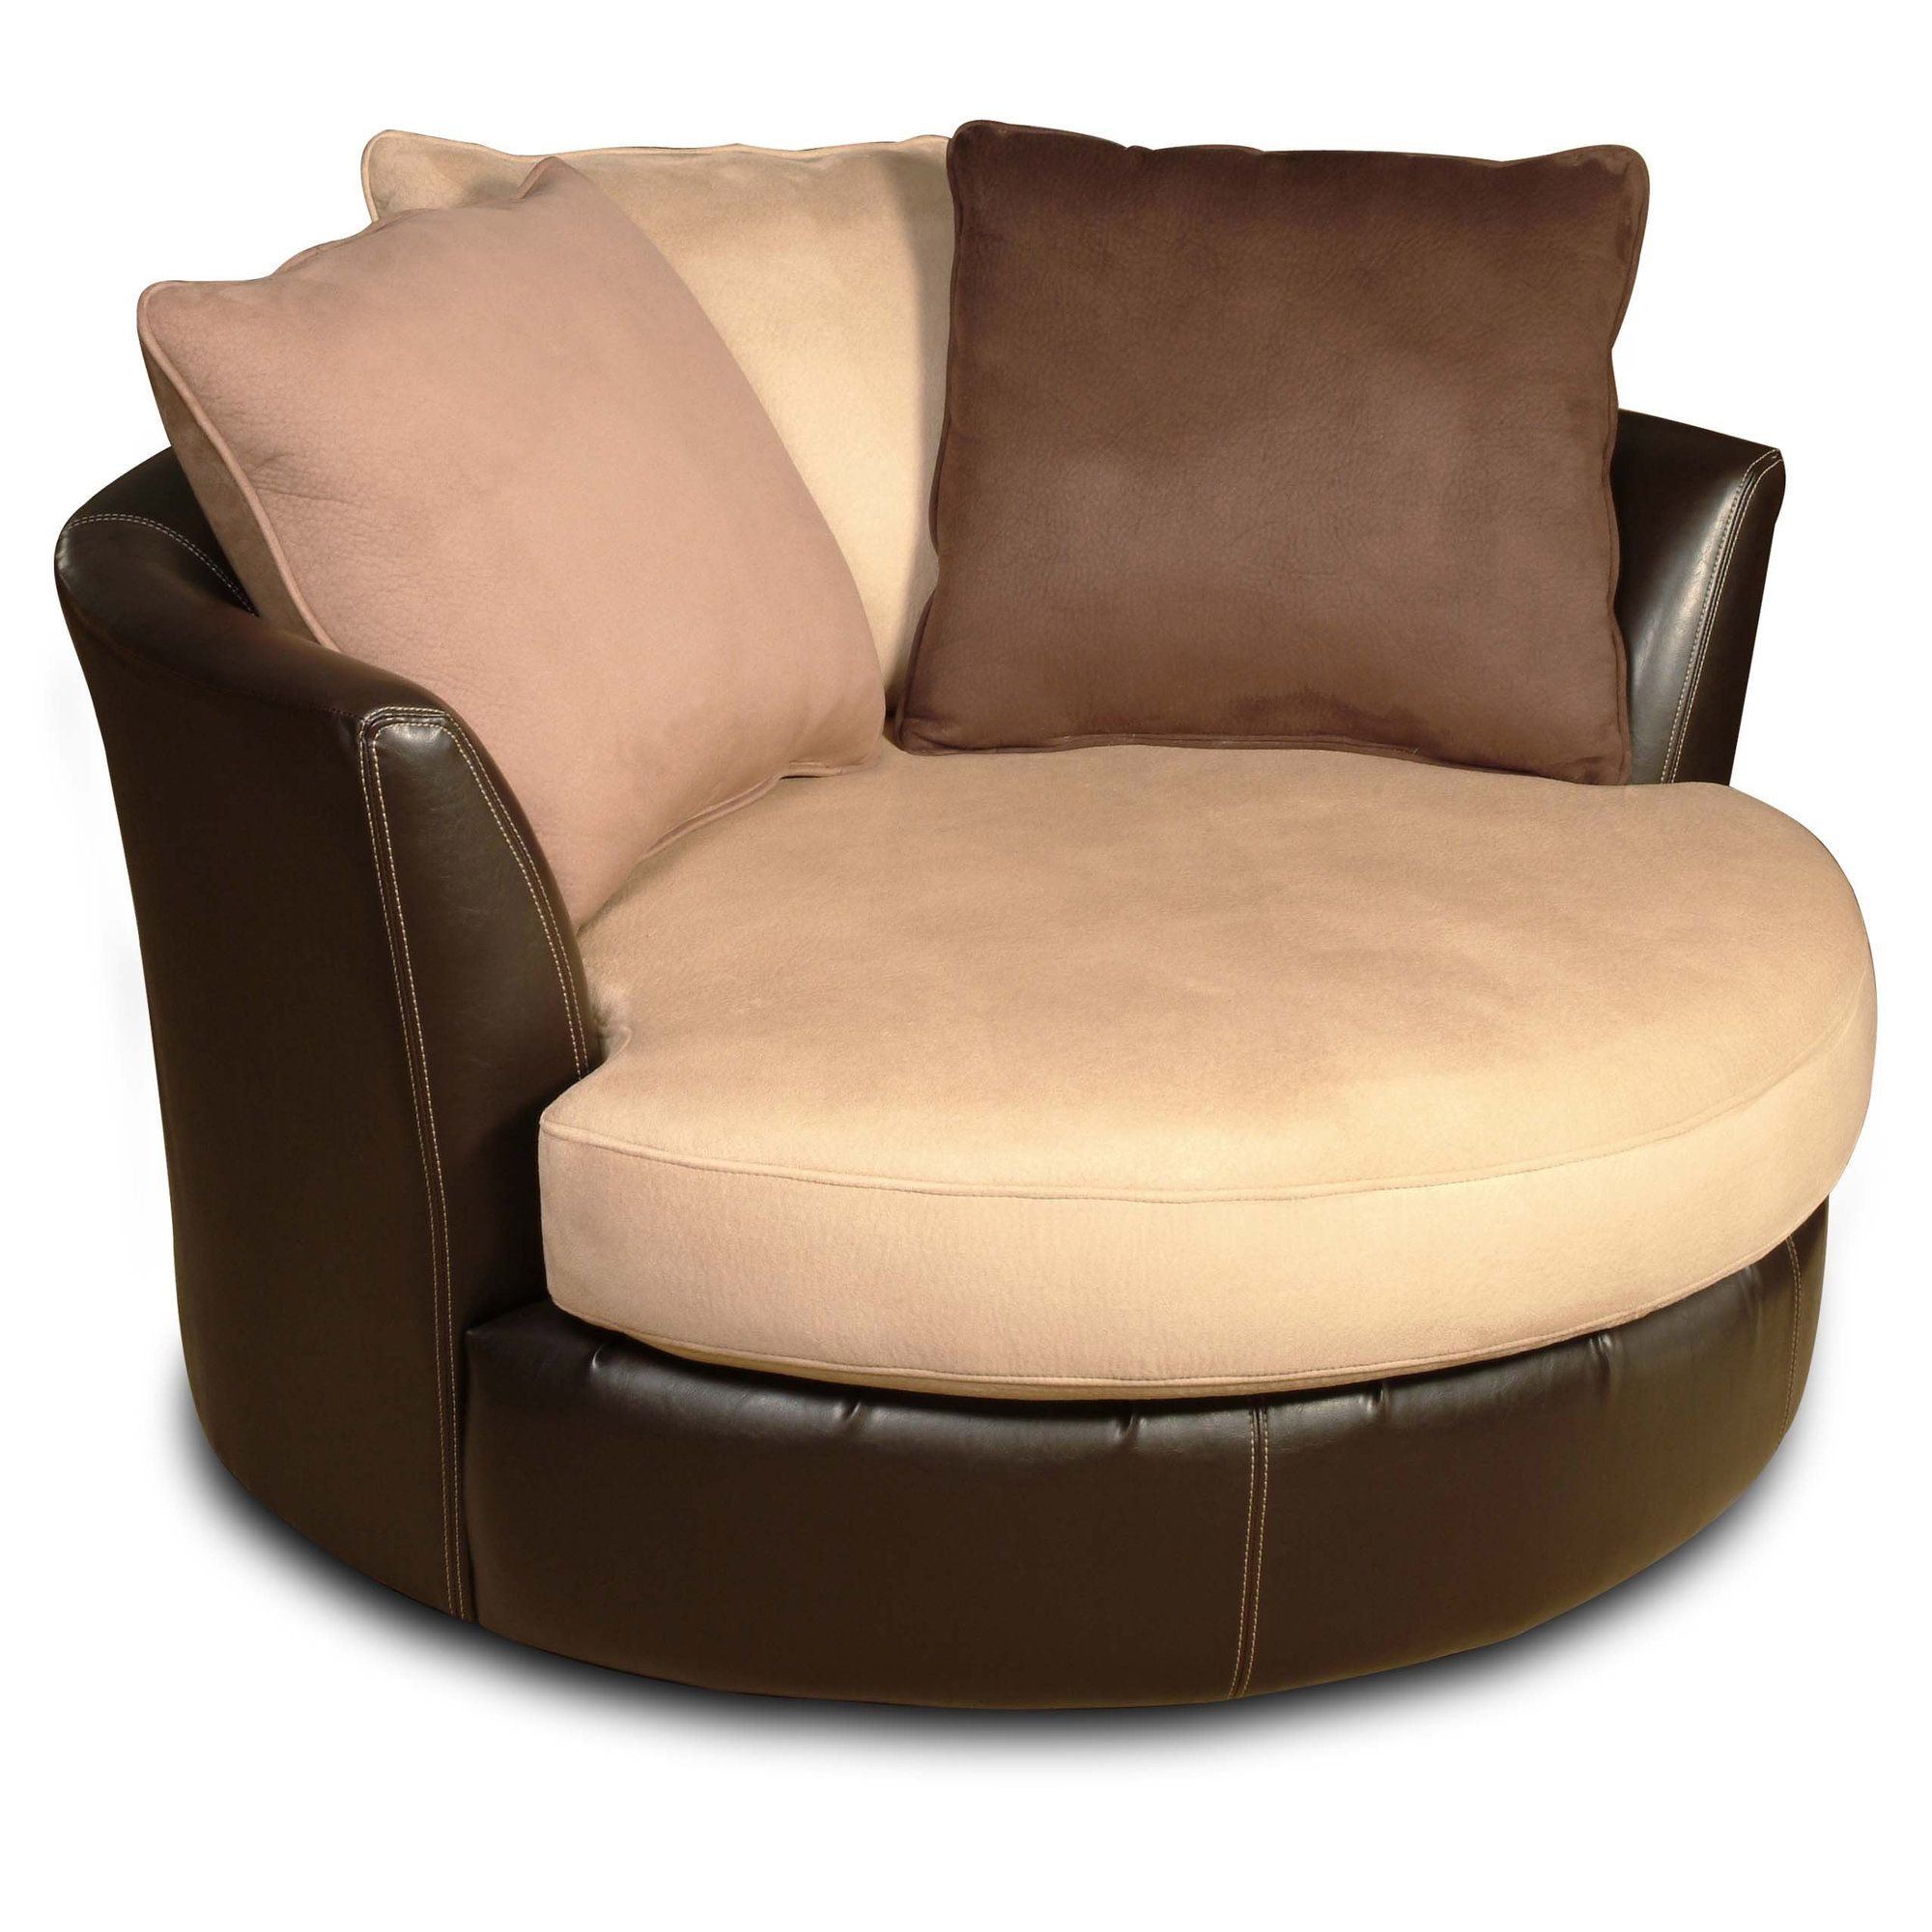 Shaker Swivel Barrel Chair | Swivel chair, Round sofa chair